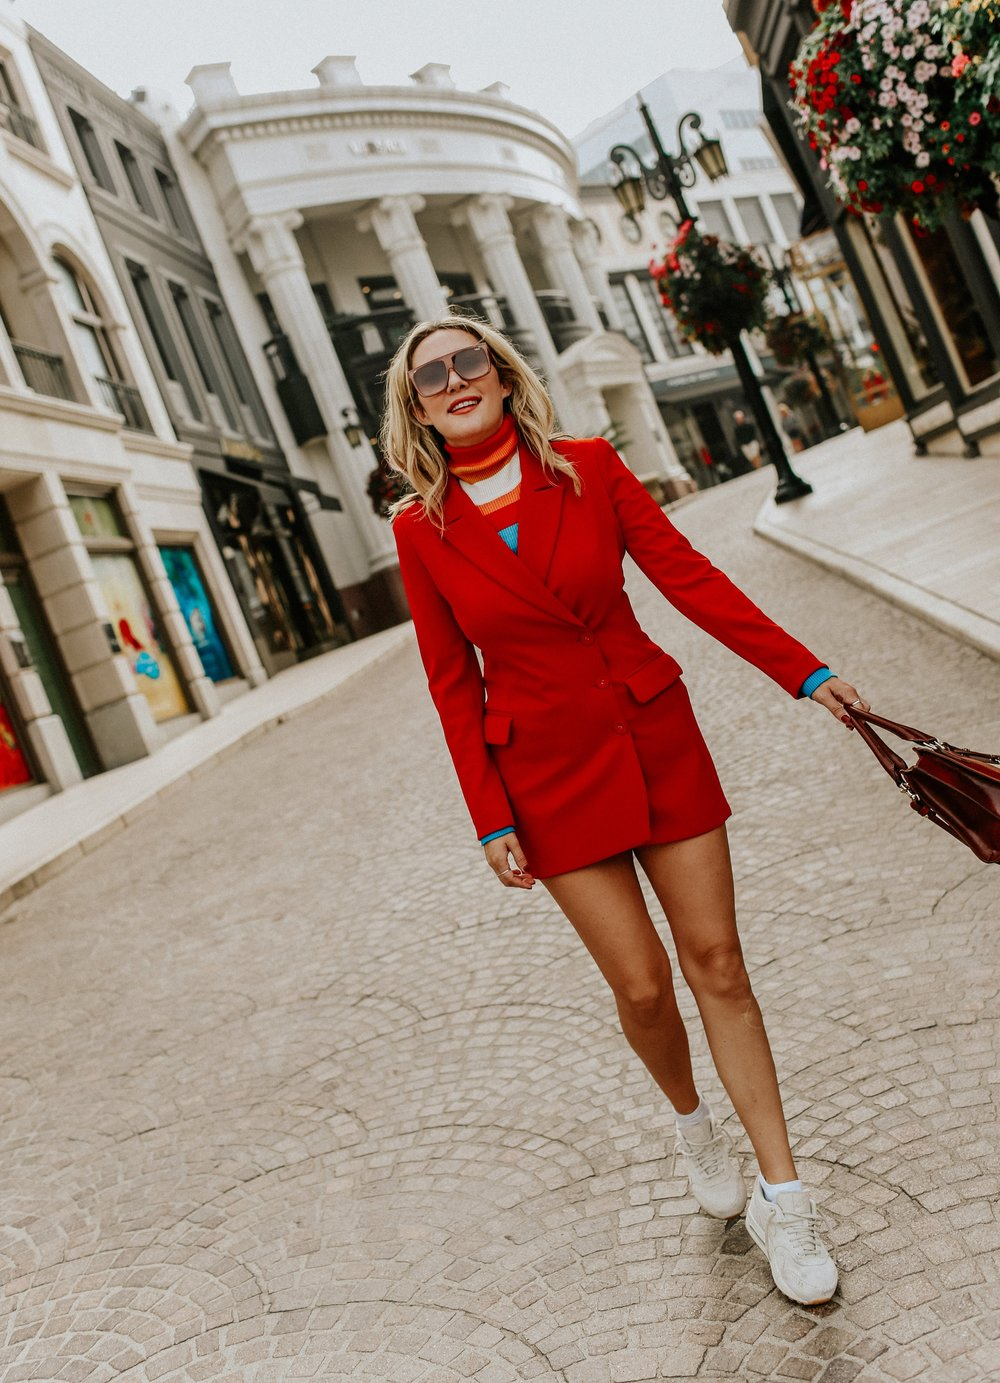 The Style Sauce fashion blogger Genevieve Liebscher